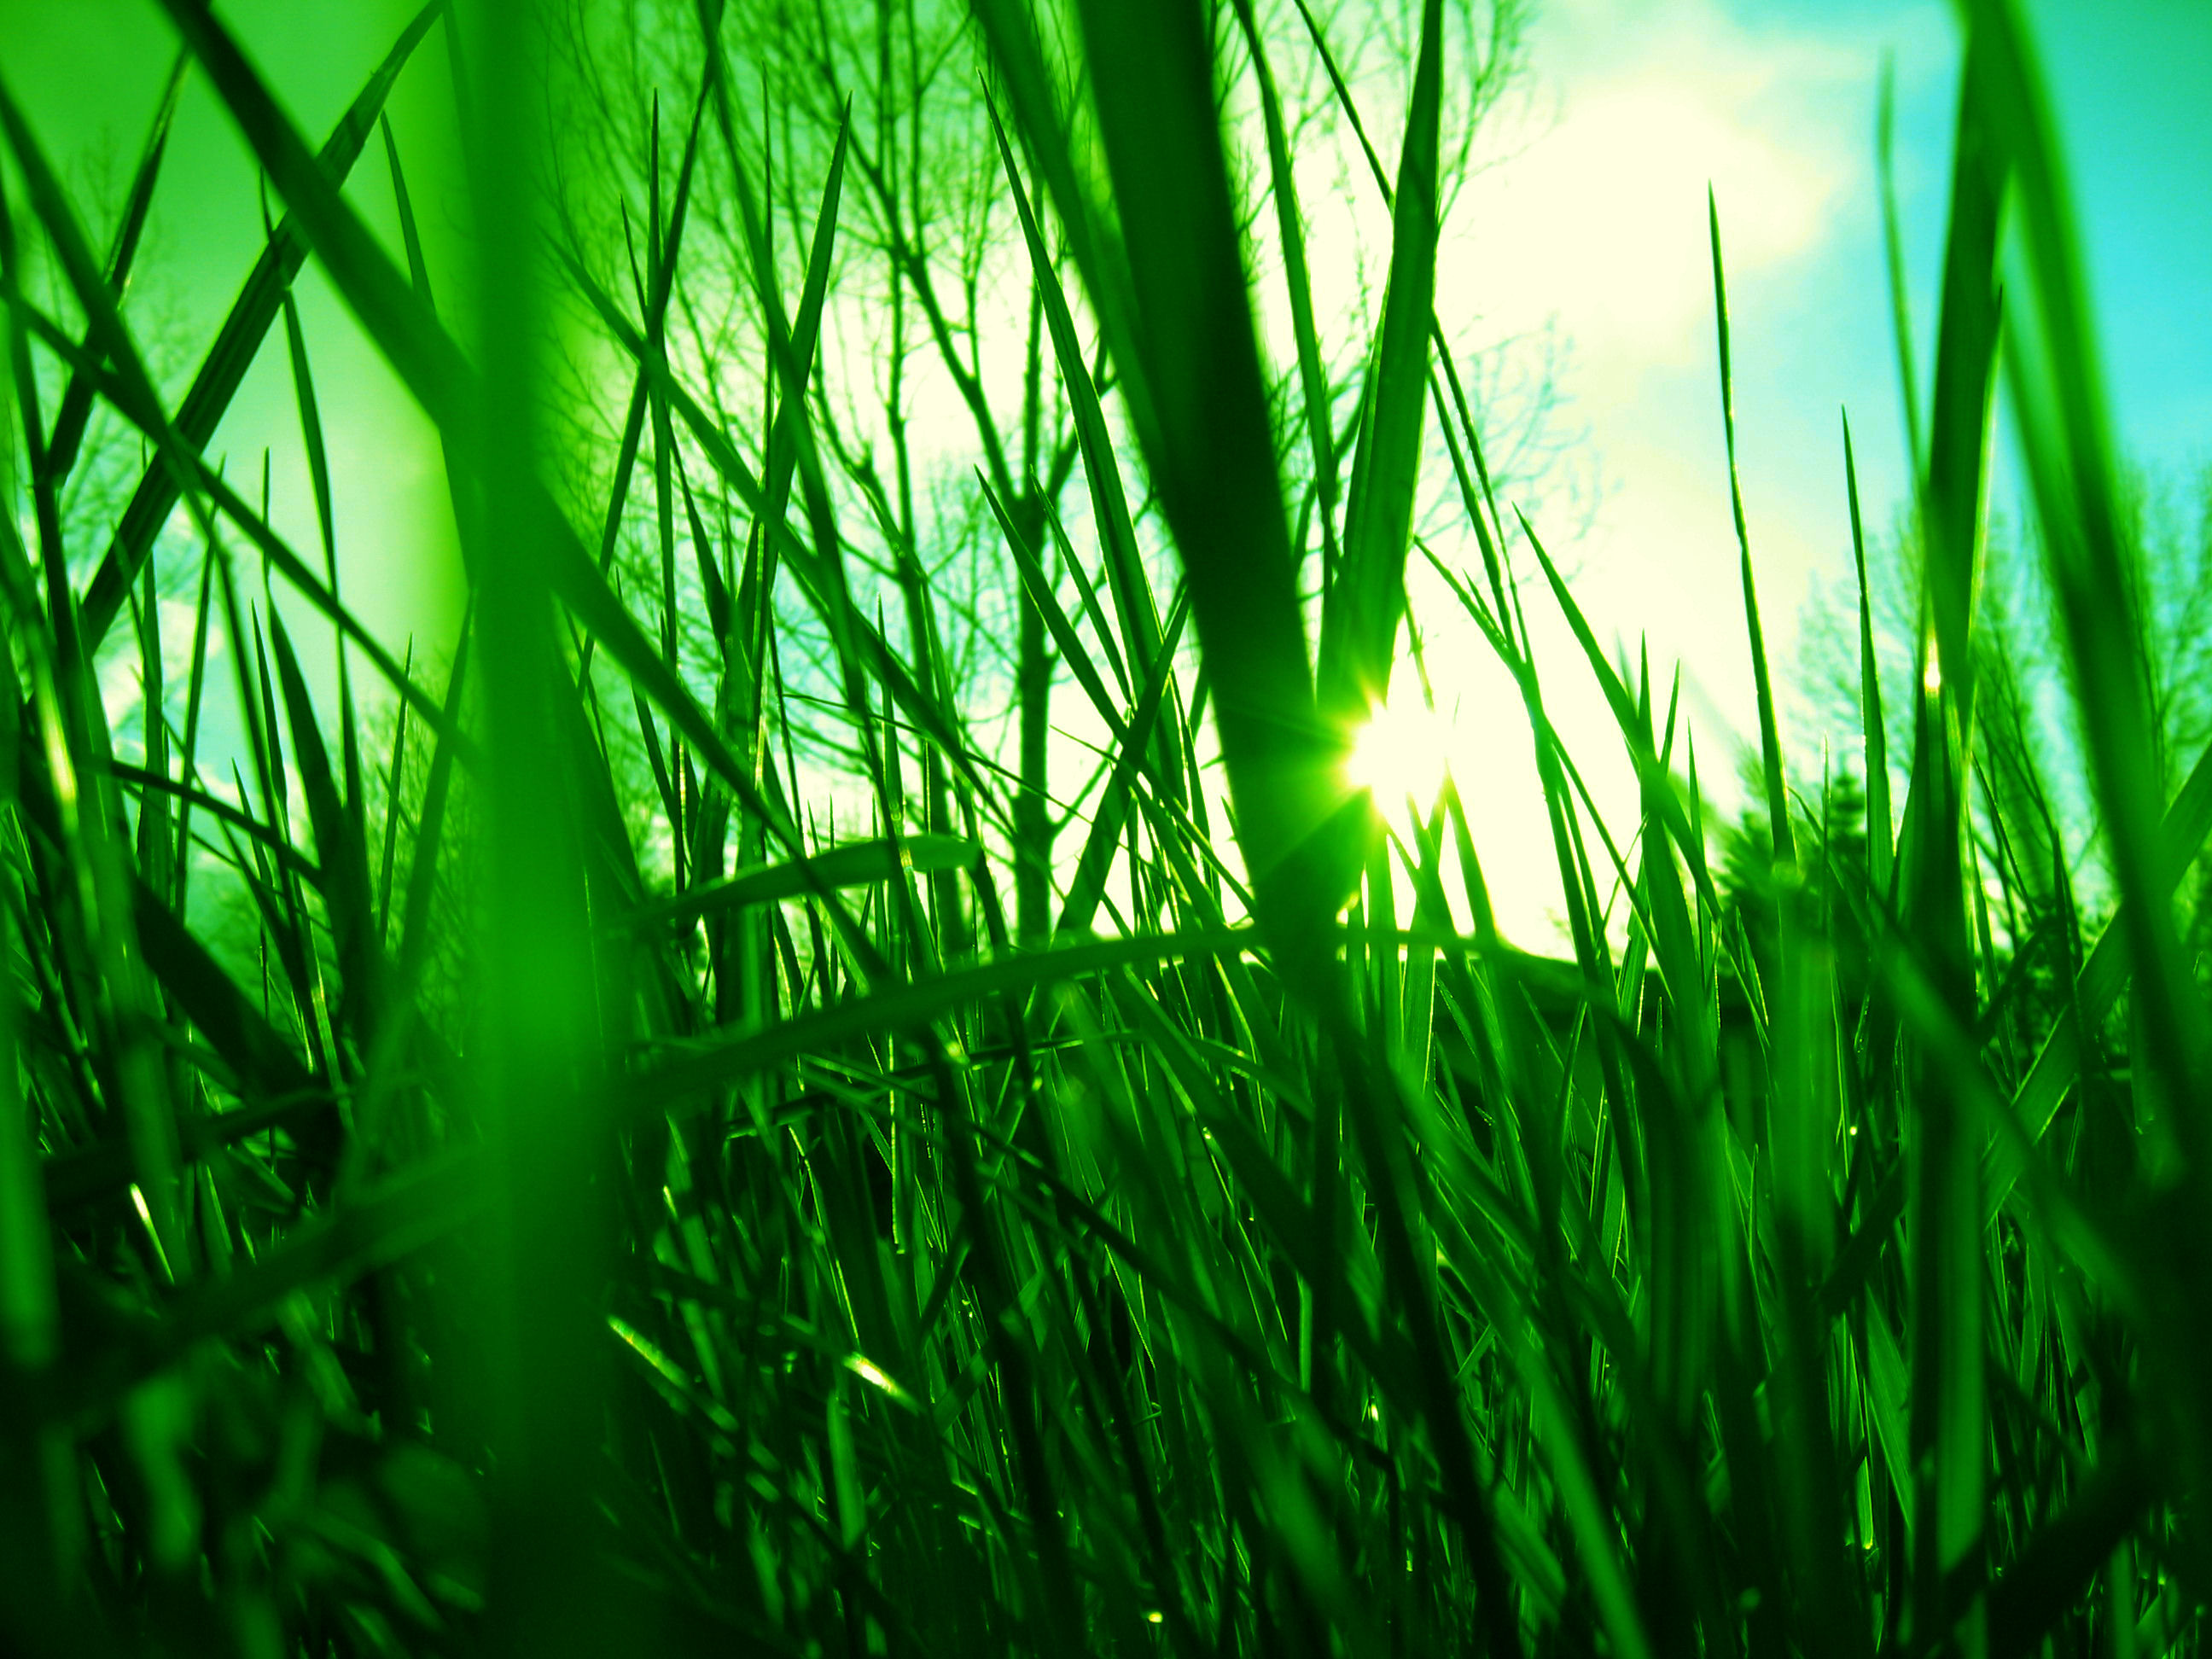 Grass Tumblr Images - Reverse Search